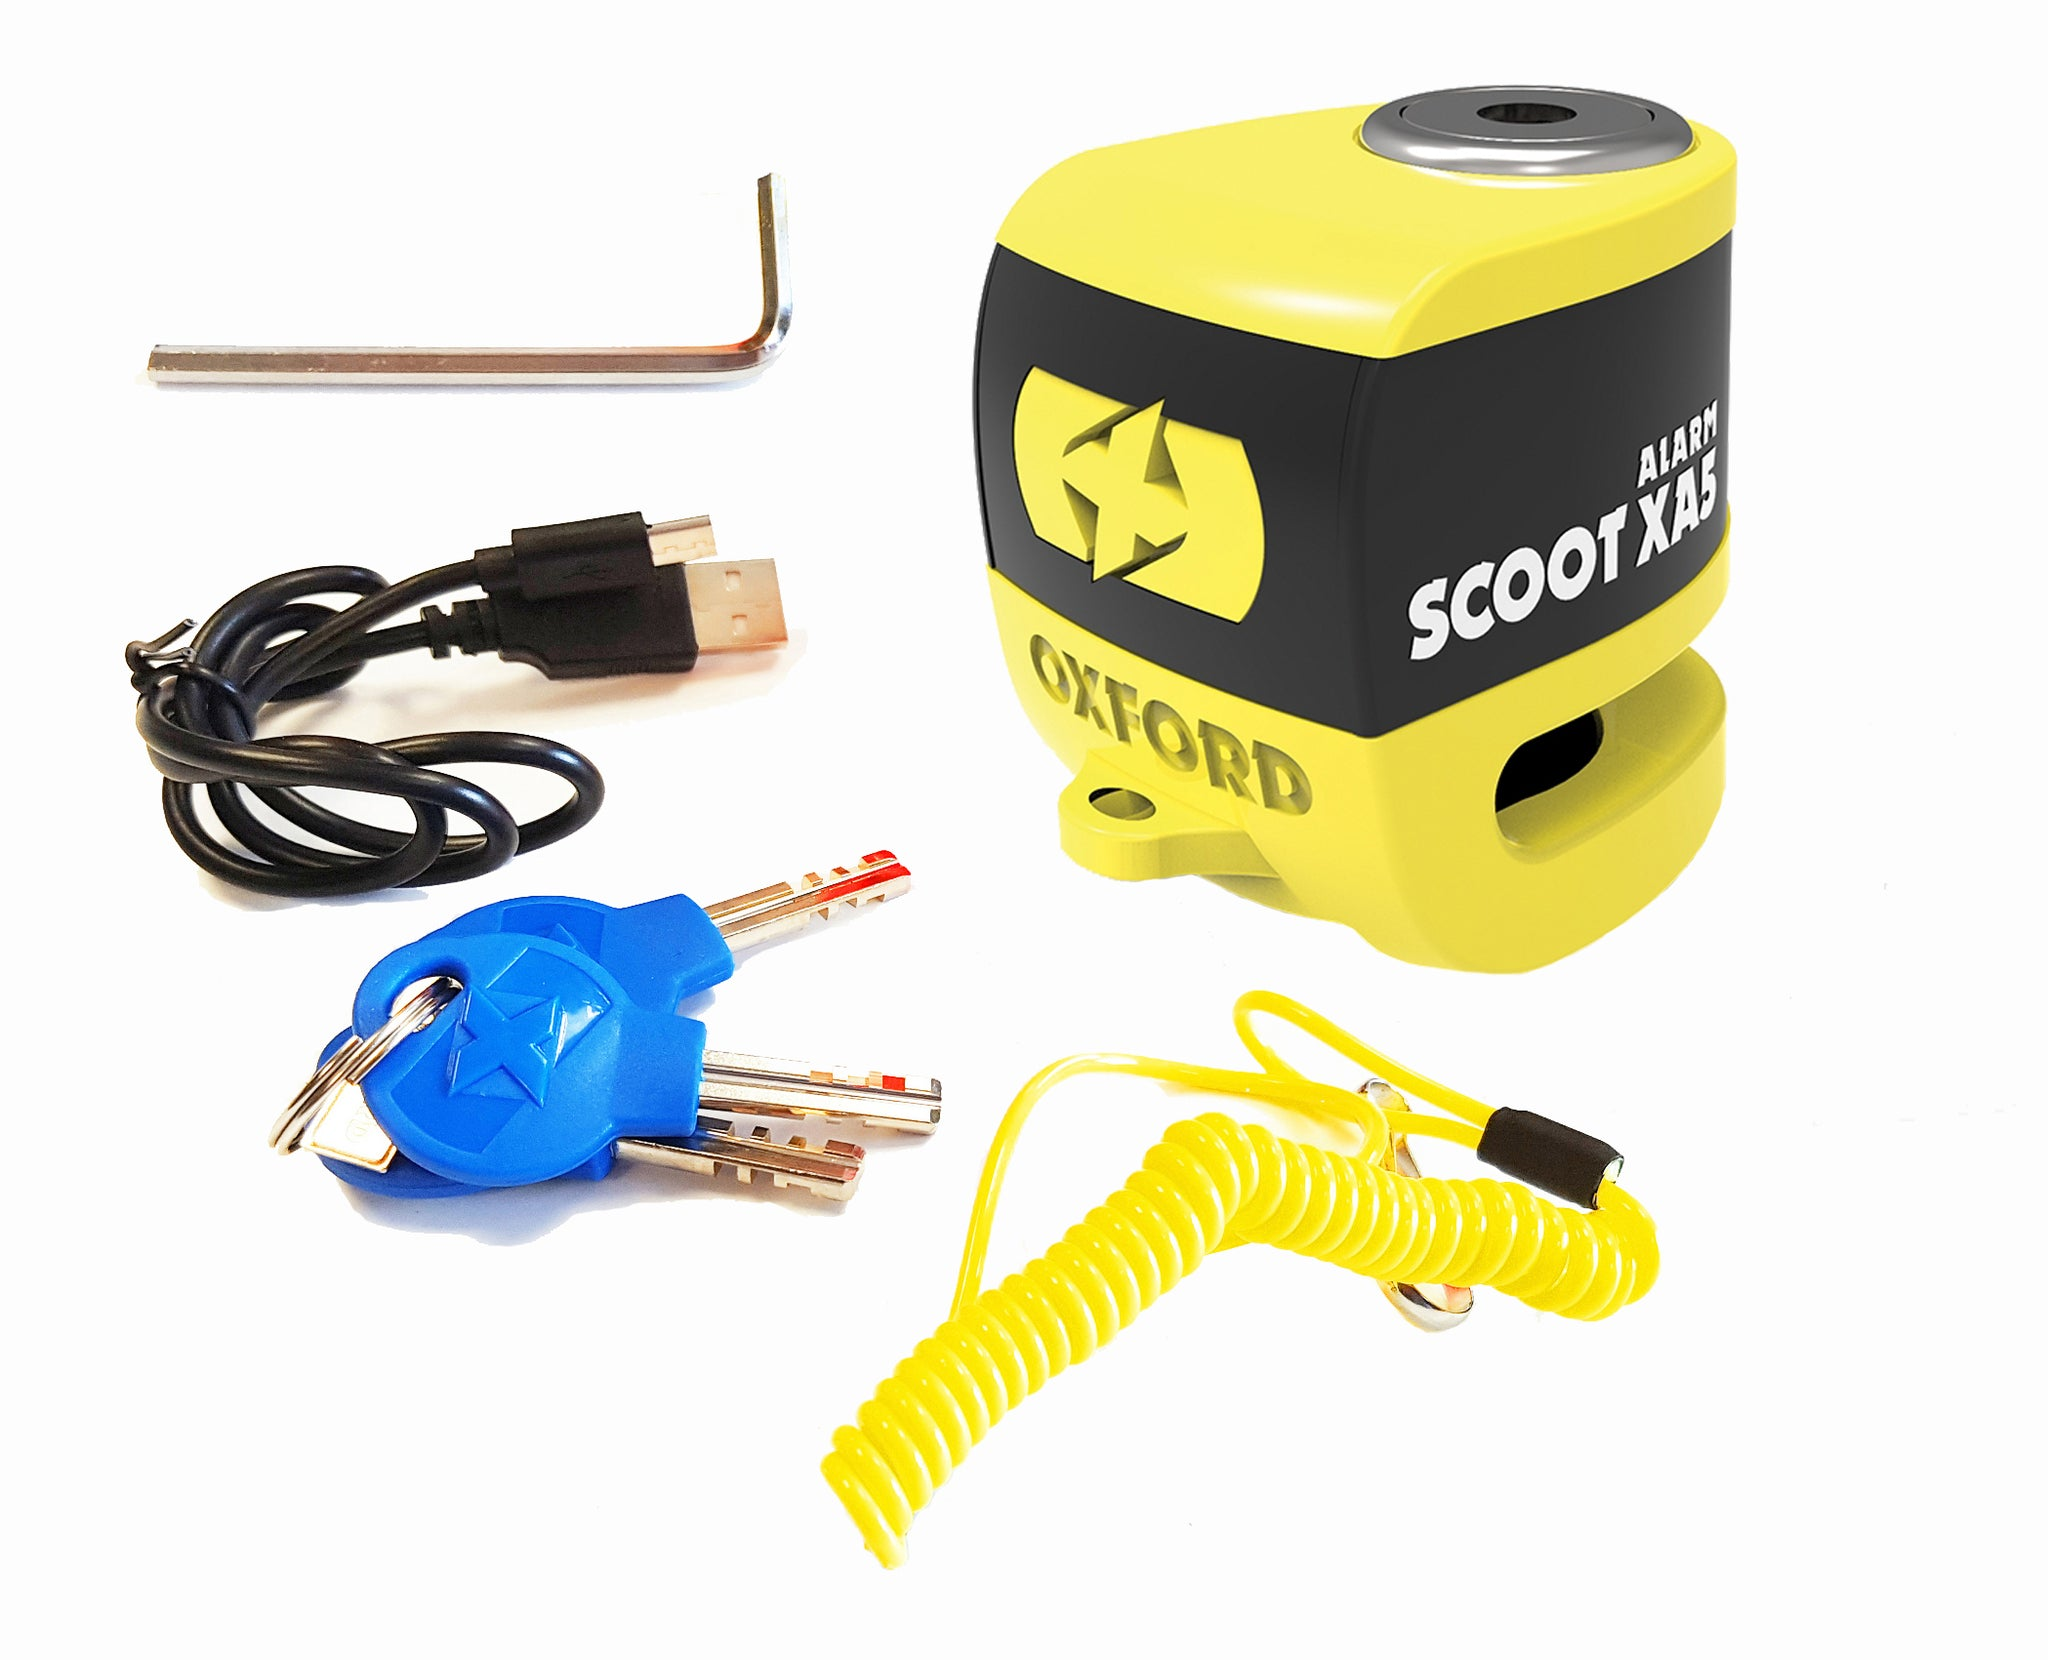 Kawasaki Z1000Sx Oxford SCOOT XA5 LK287 Security Motorbike Yellow Disc Lock